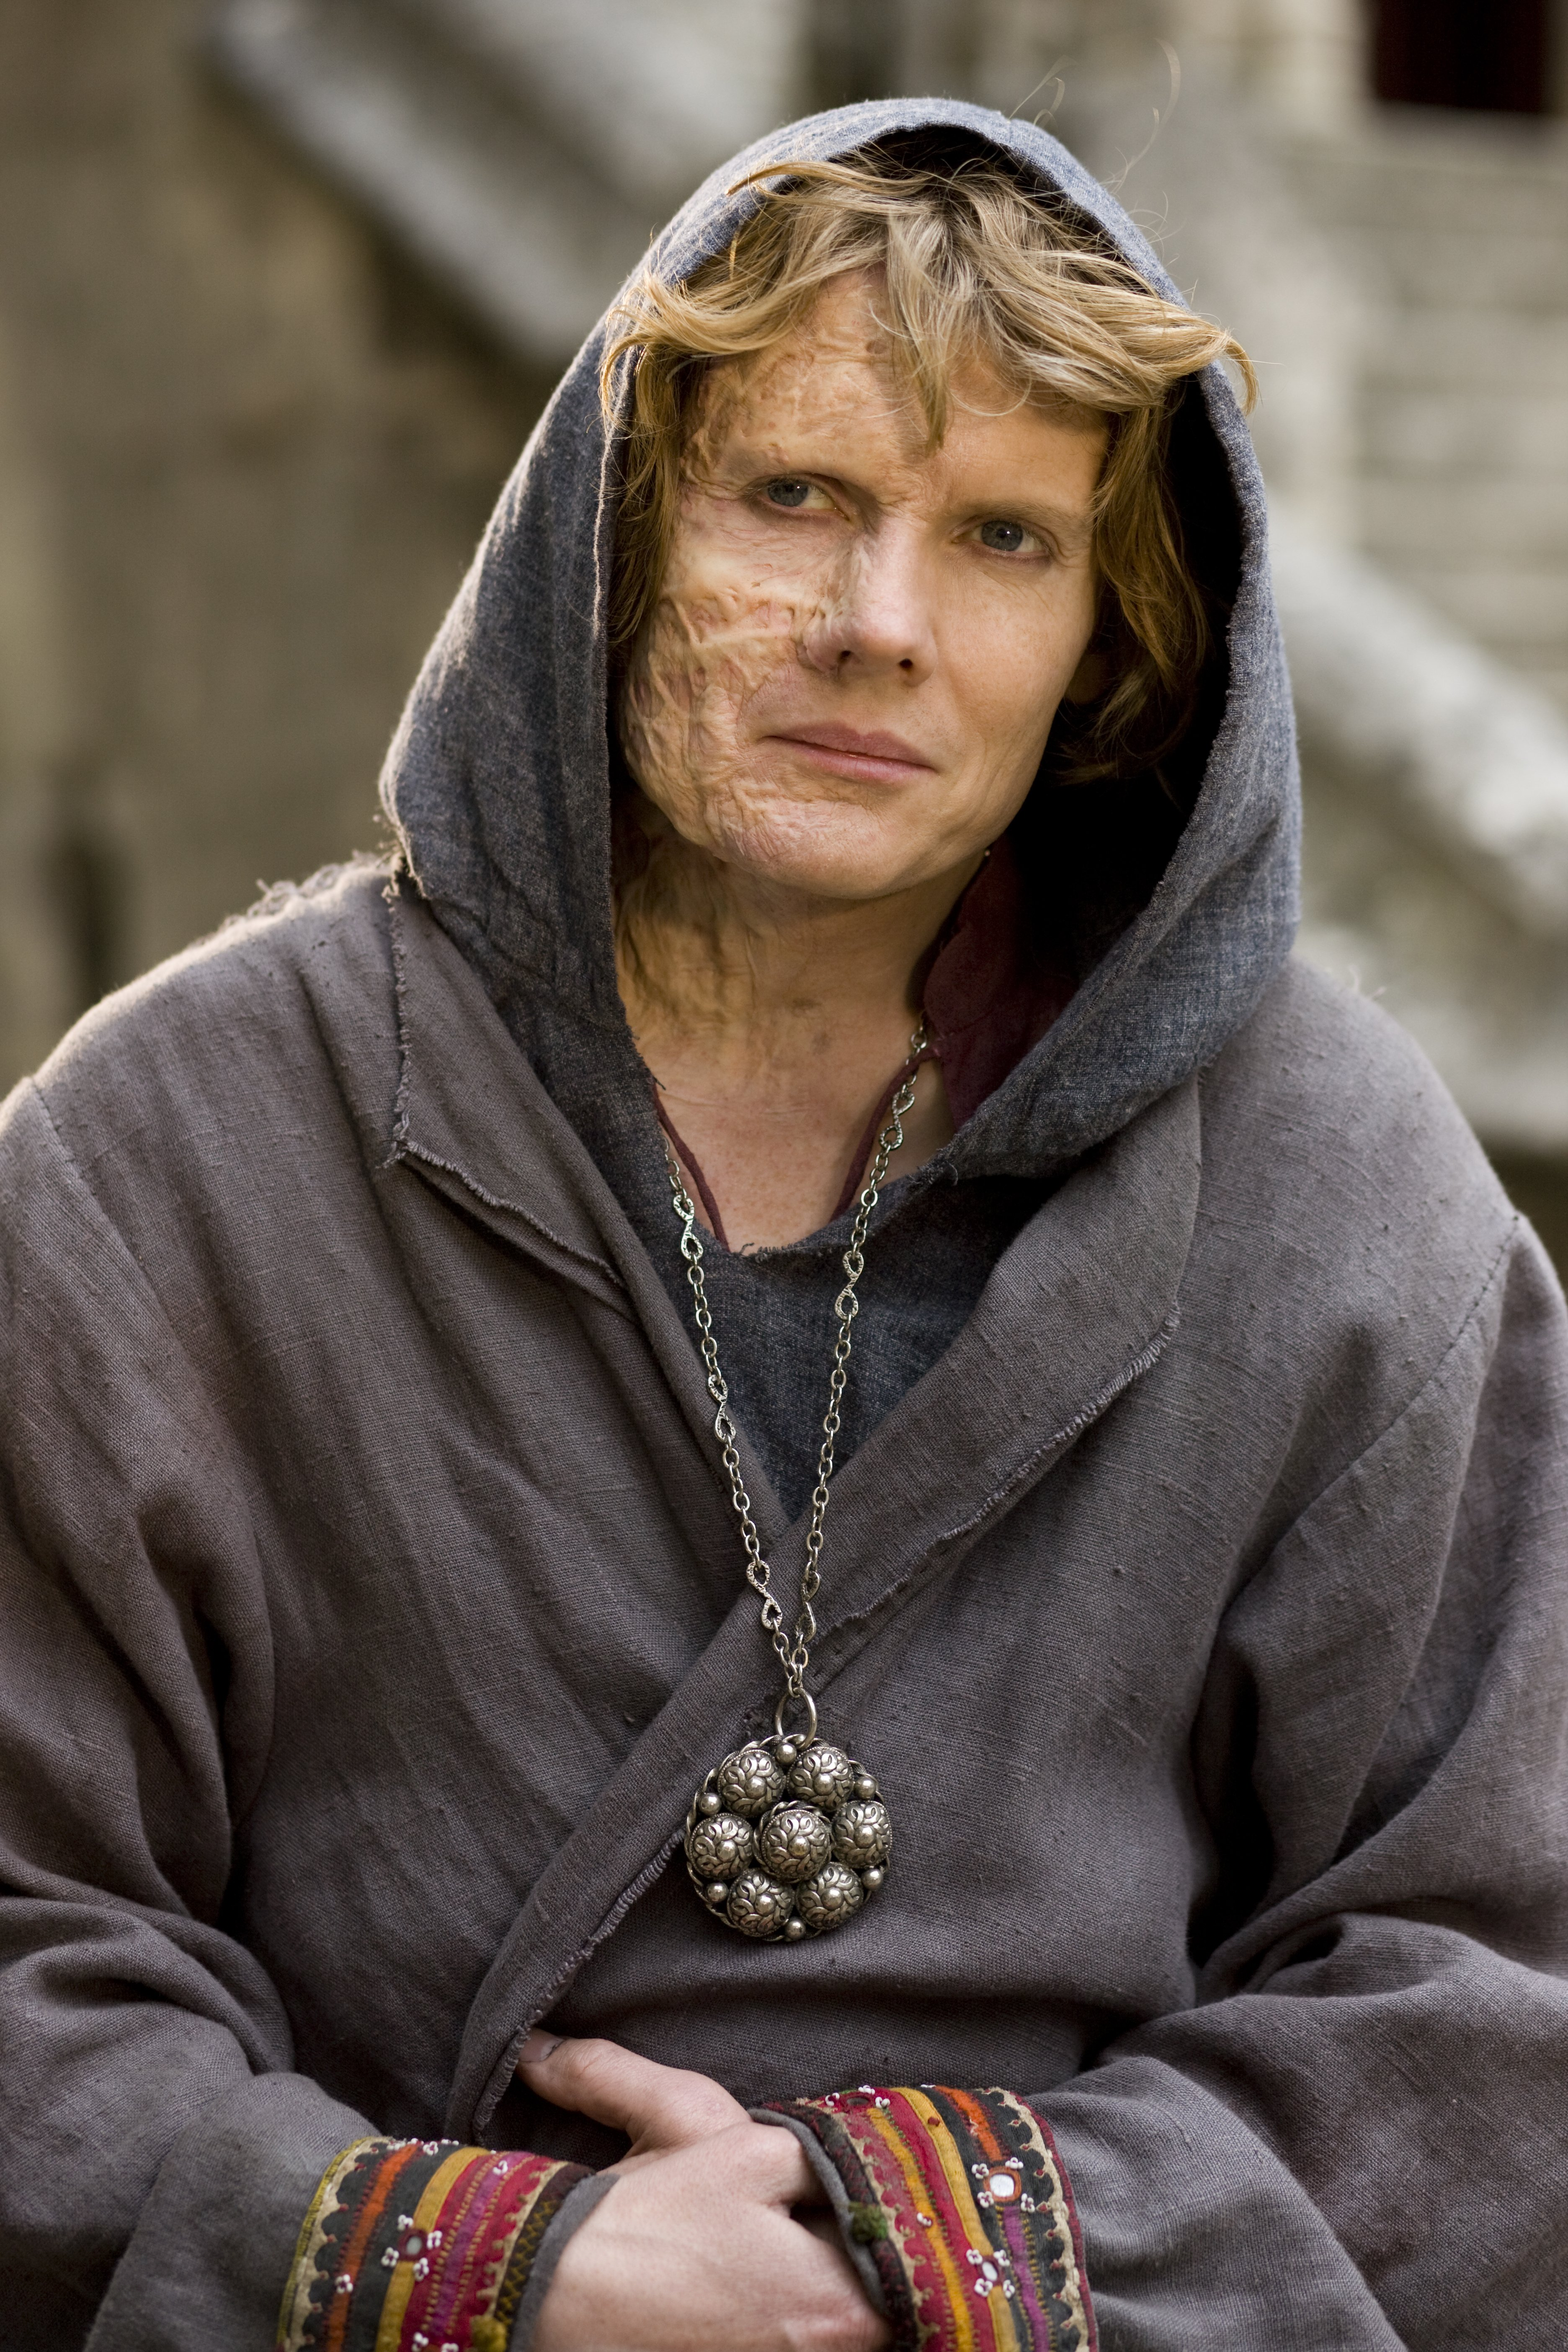 merlin single guys Merlin is one of the 14 wizards featured in master of magic by default, he has 5 and 5 spellbooks at his disposal, as well as the sage master retort merlin's name and archetypal.